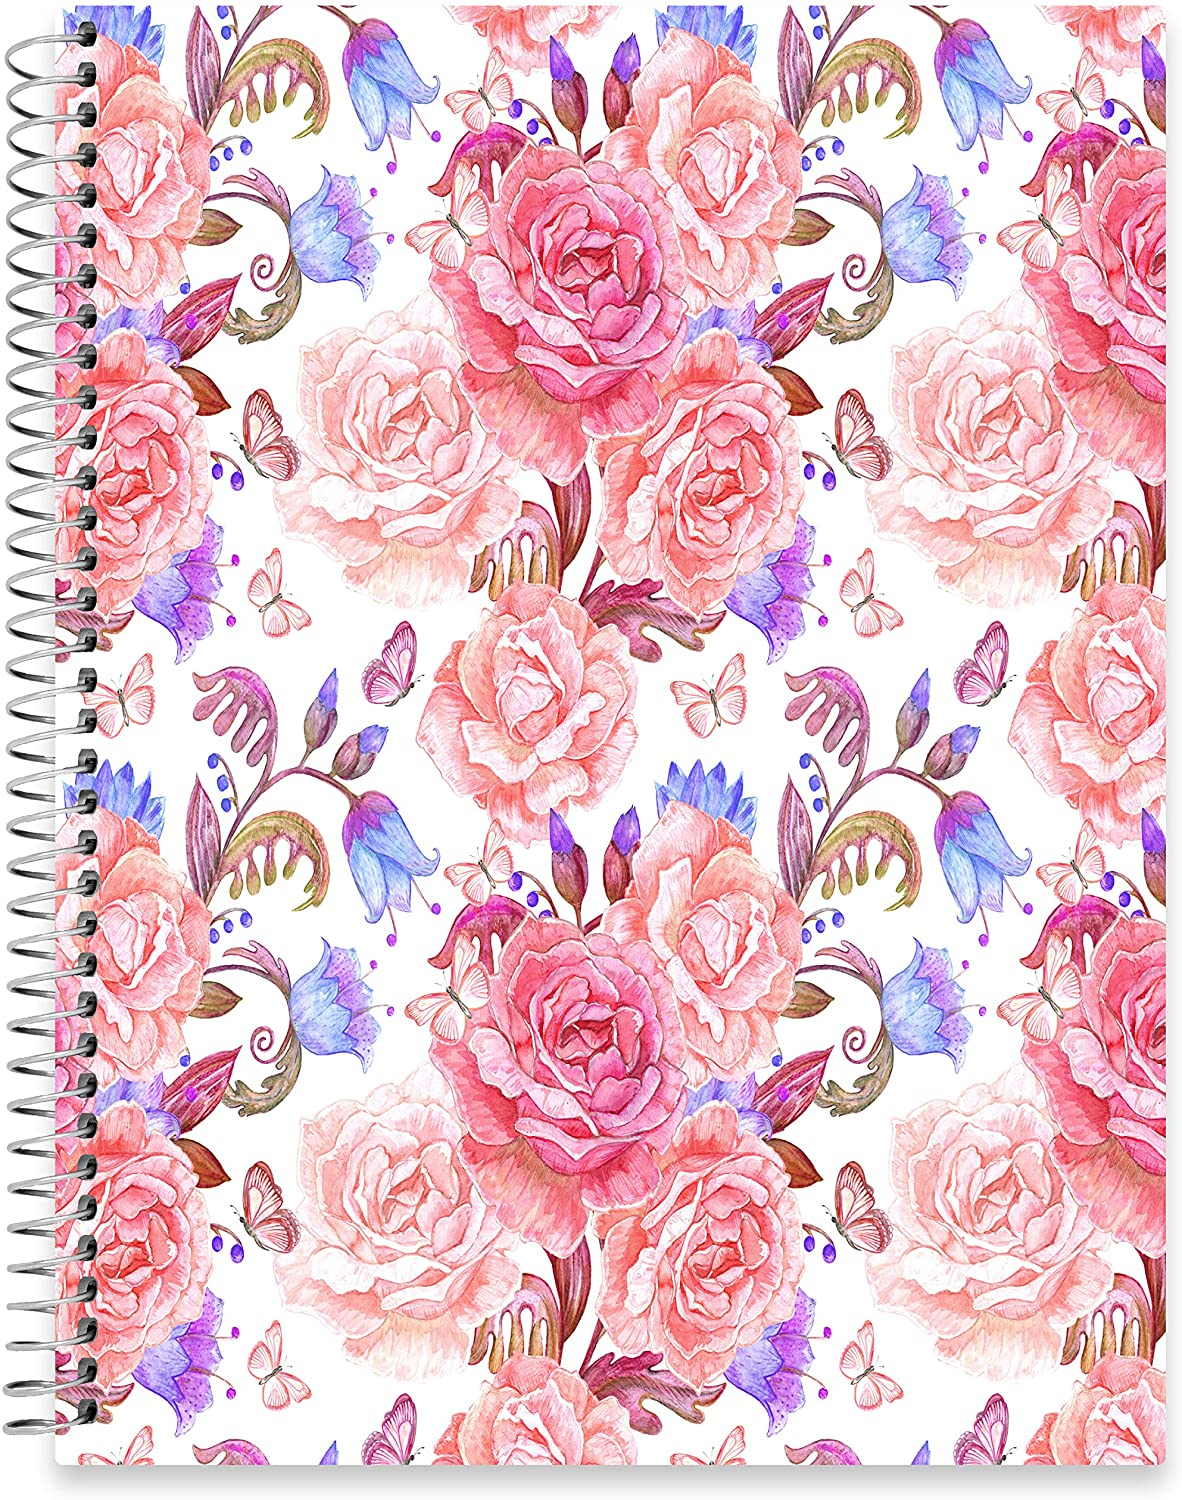 "July 2020 - June 2021 Softcover Planner - 8.5"" x 11"" - Floral Vintage Cover"